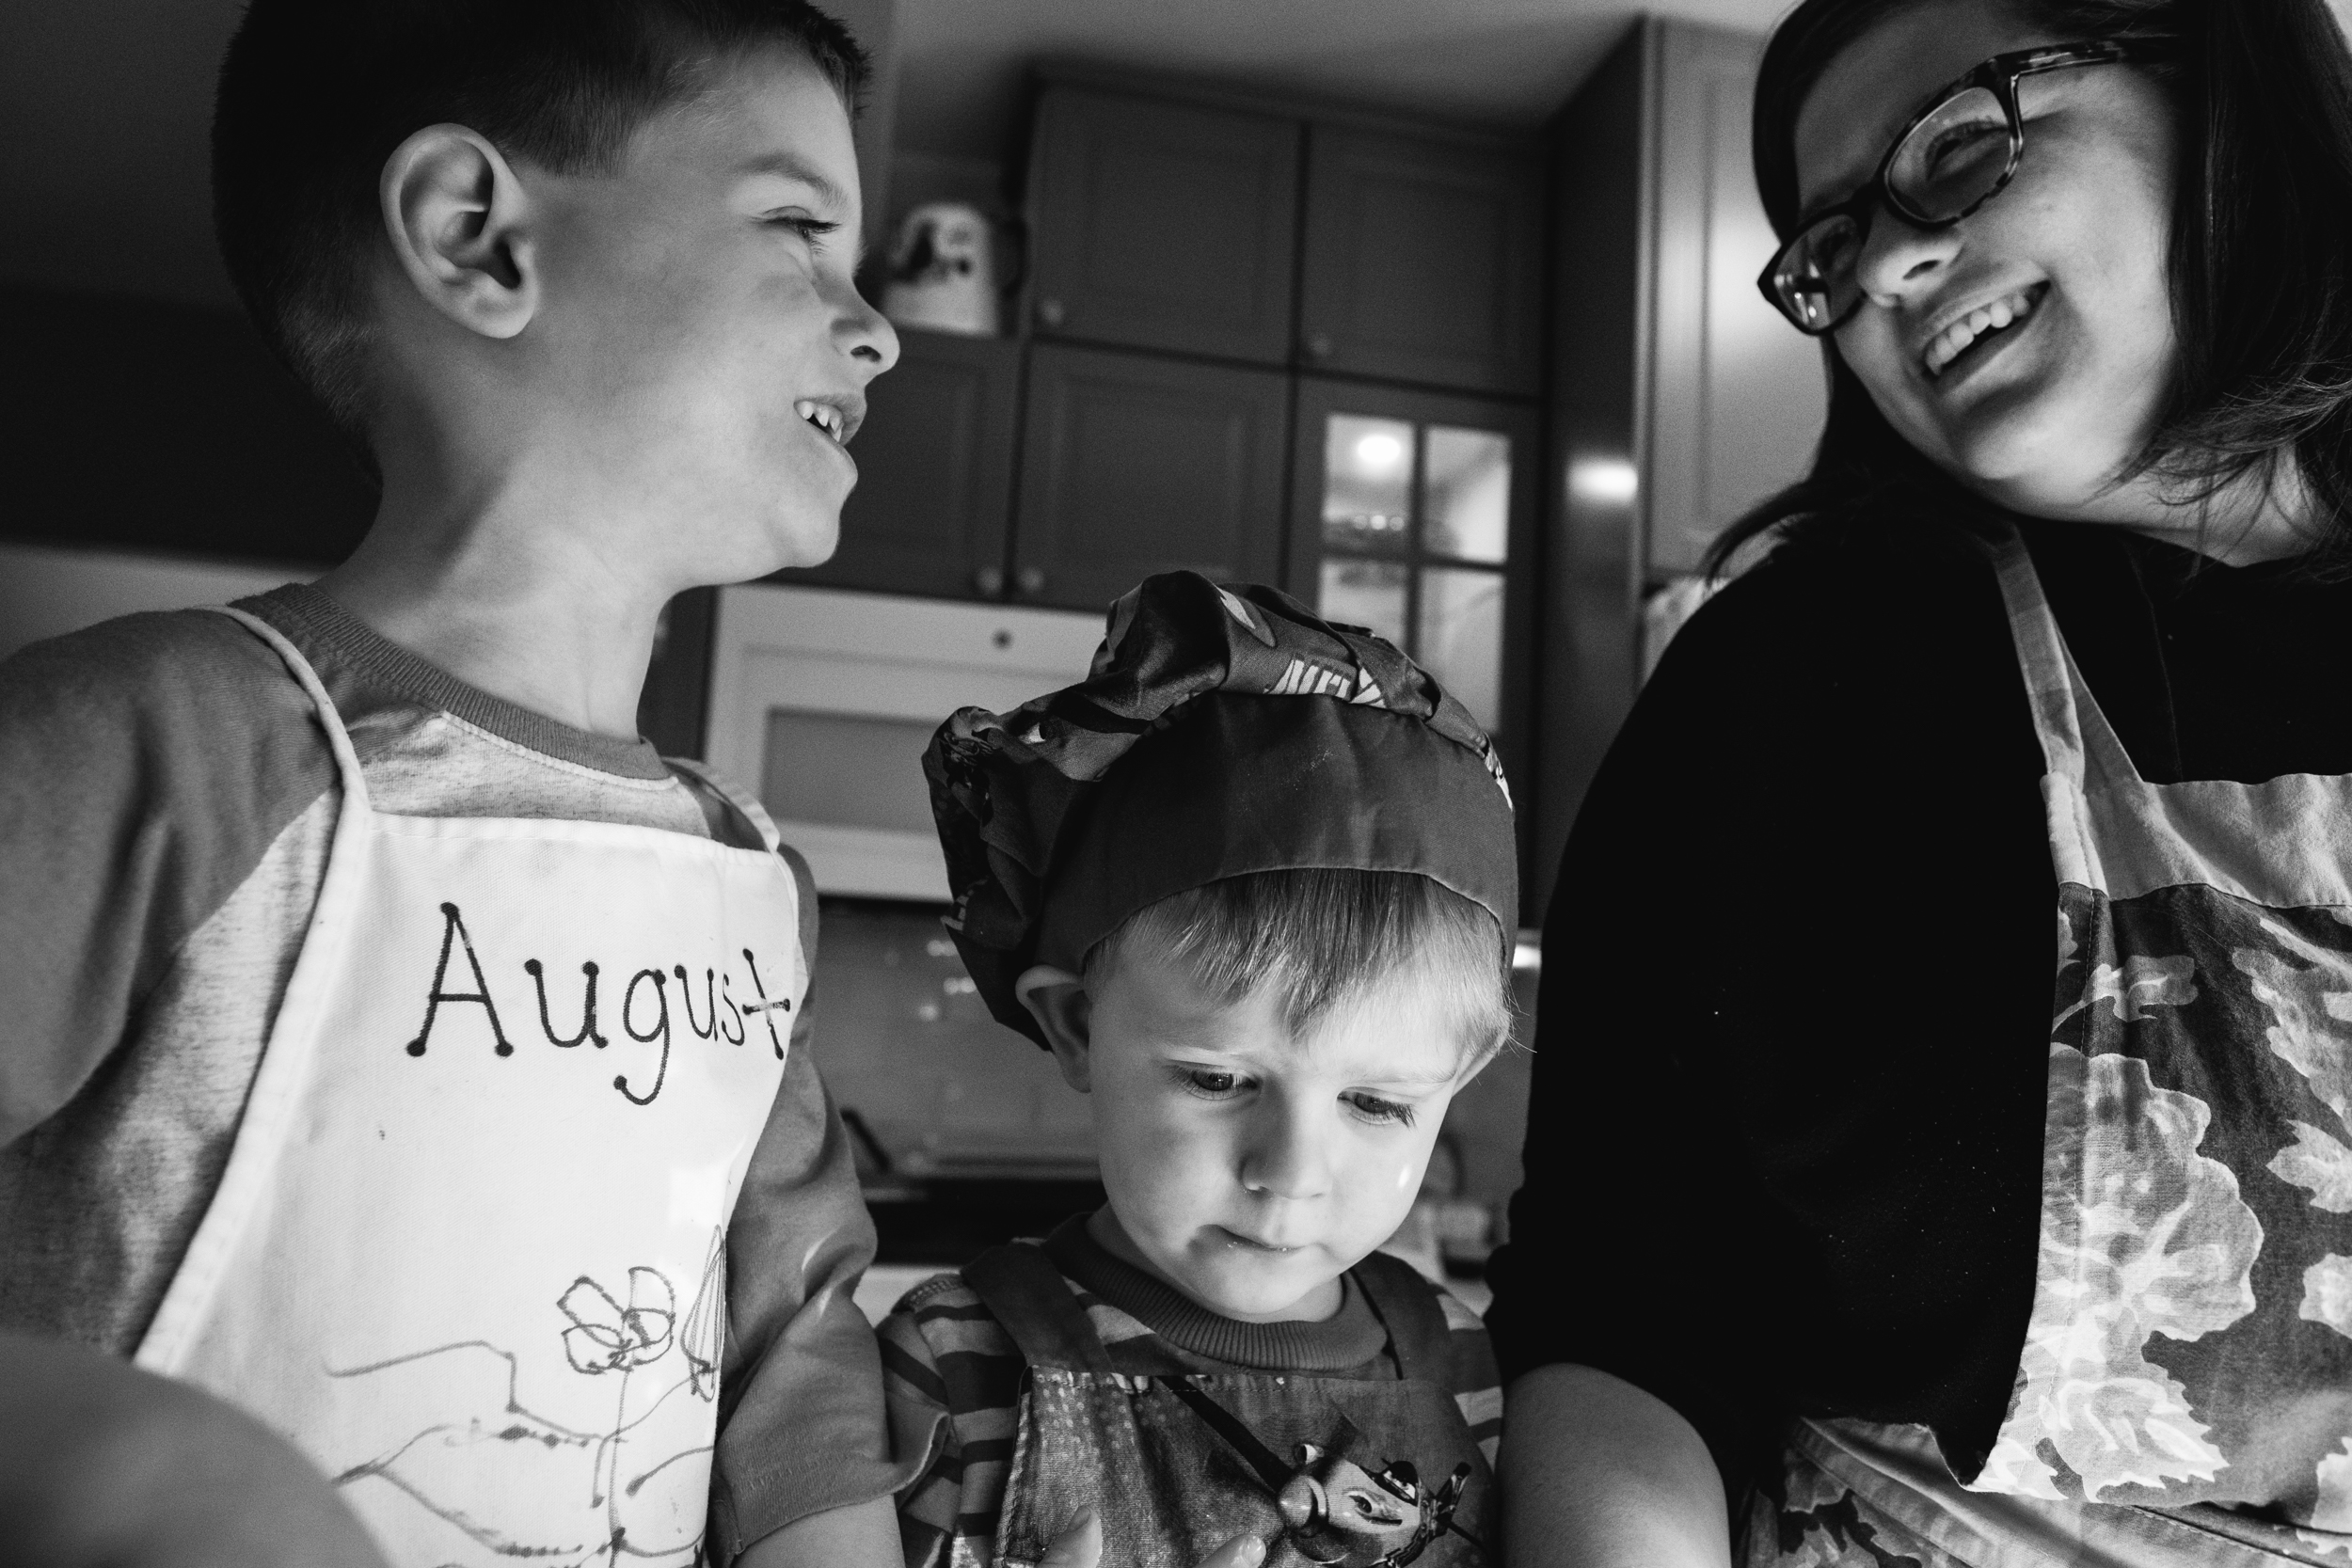 Cooking with mom. Kids loving on their mom. Metro Detroit Family Photographer. Ferndale Family Photographer